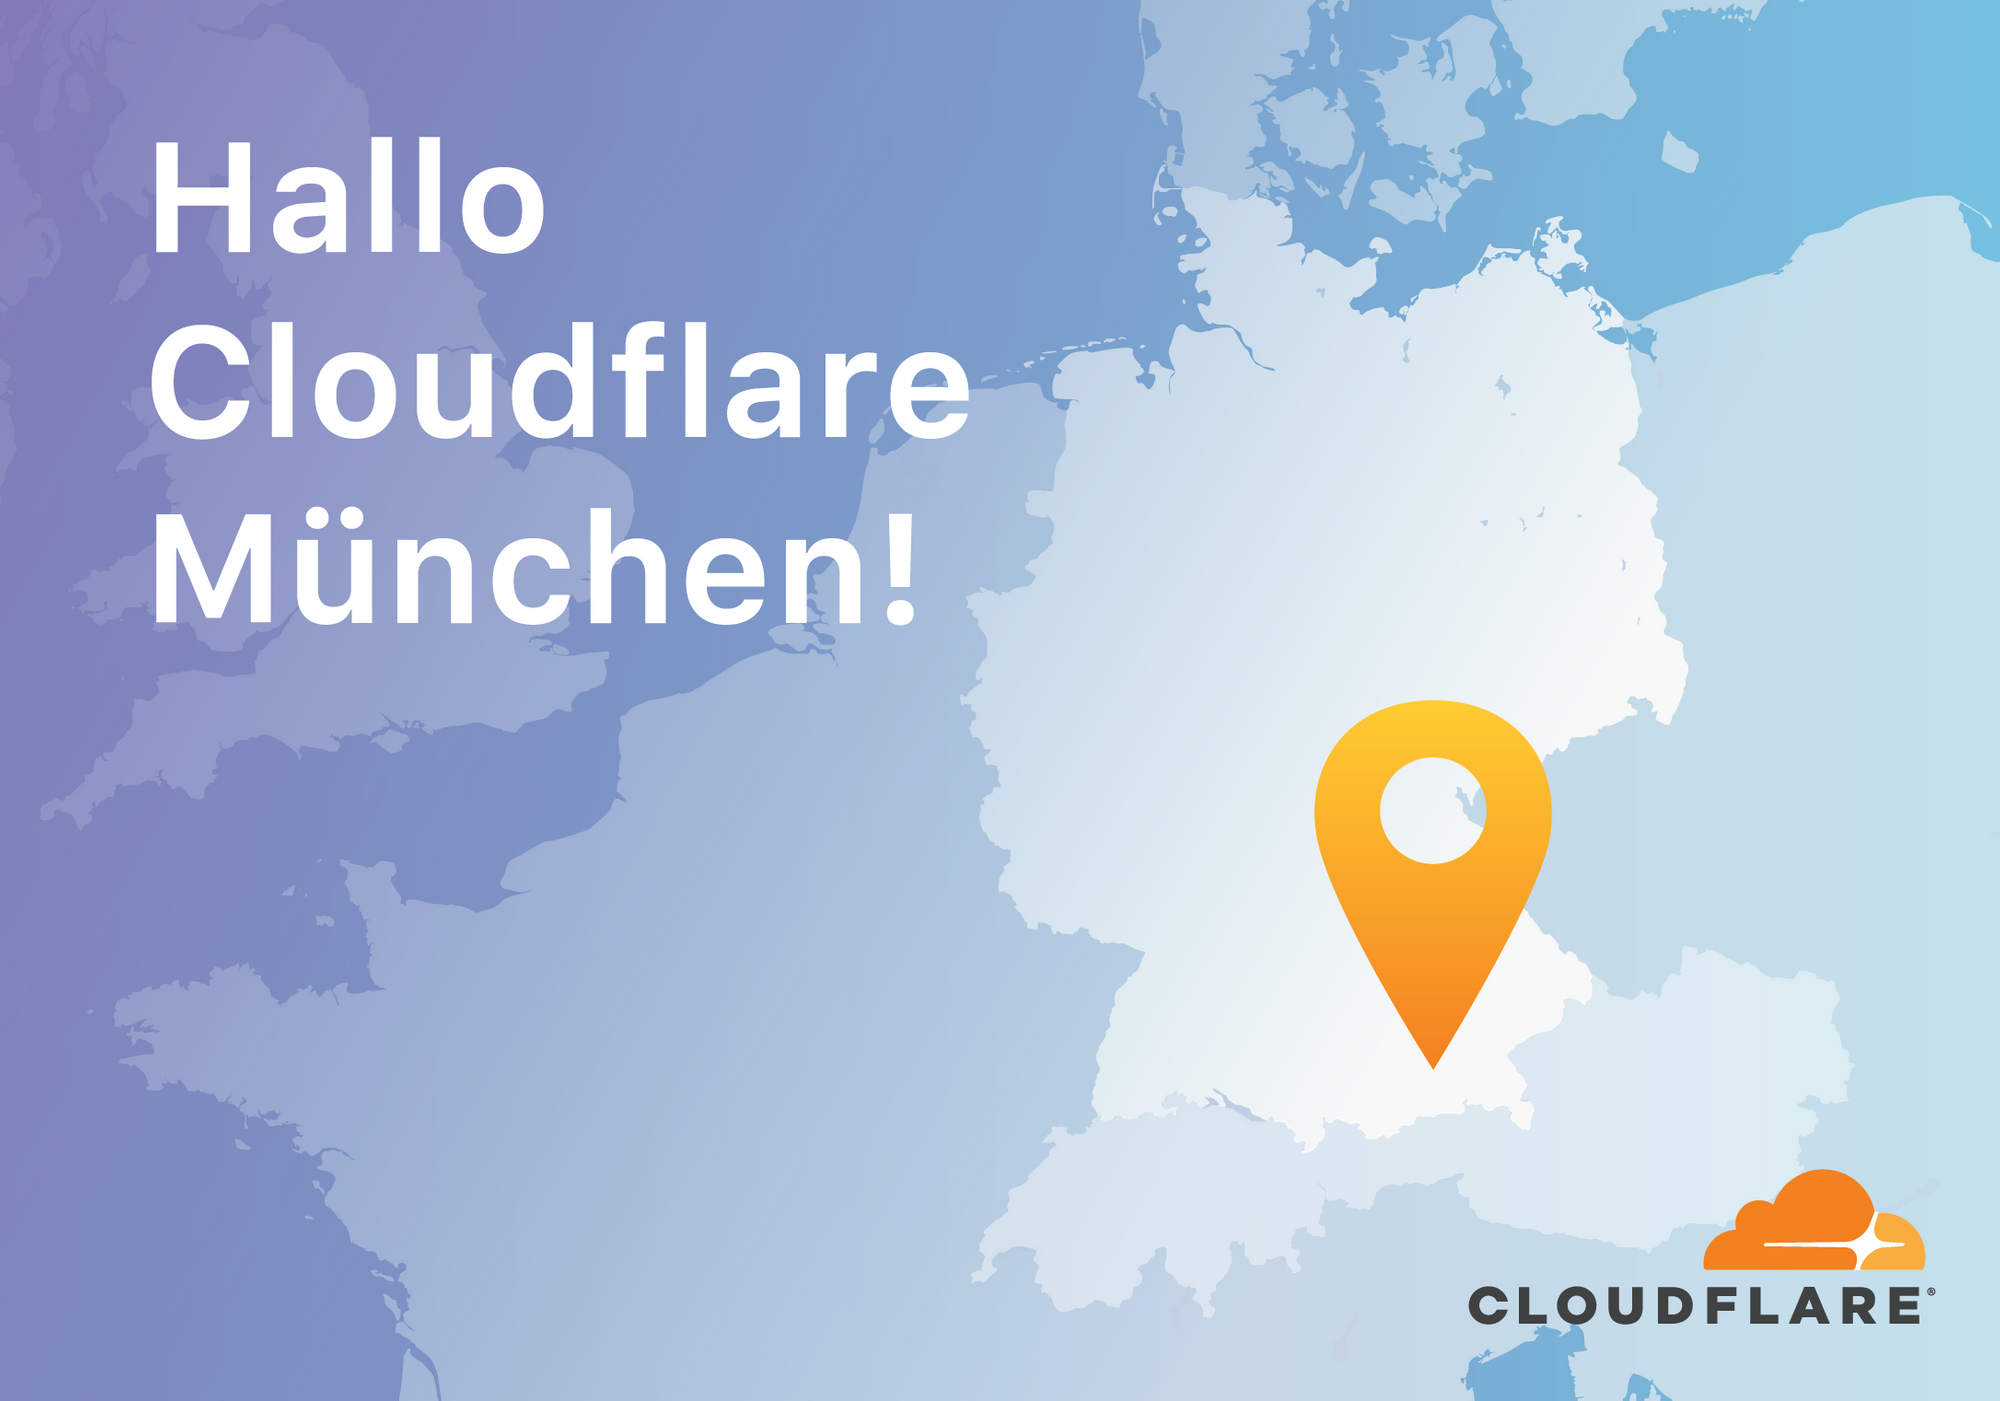 Why I'm helping Cloudflare grow in Germany, Austria, and Switzerland